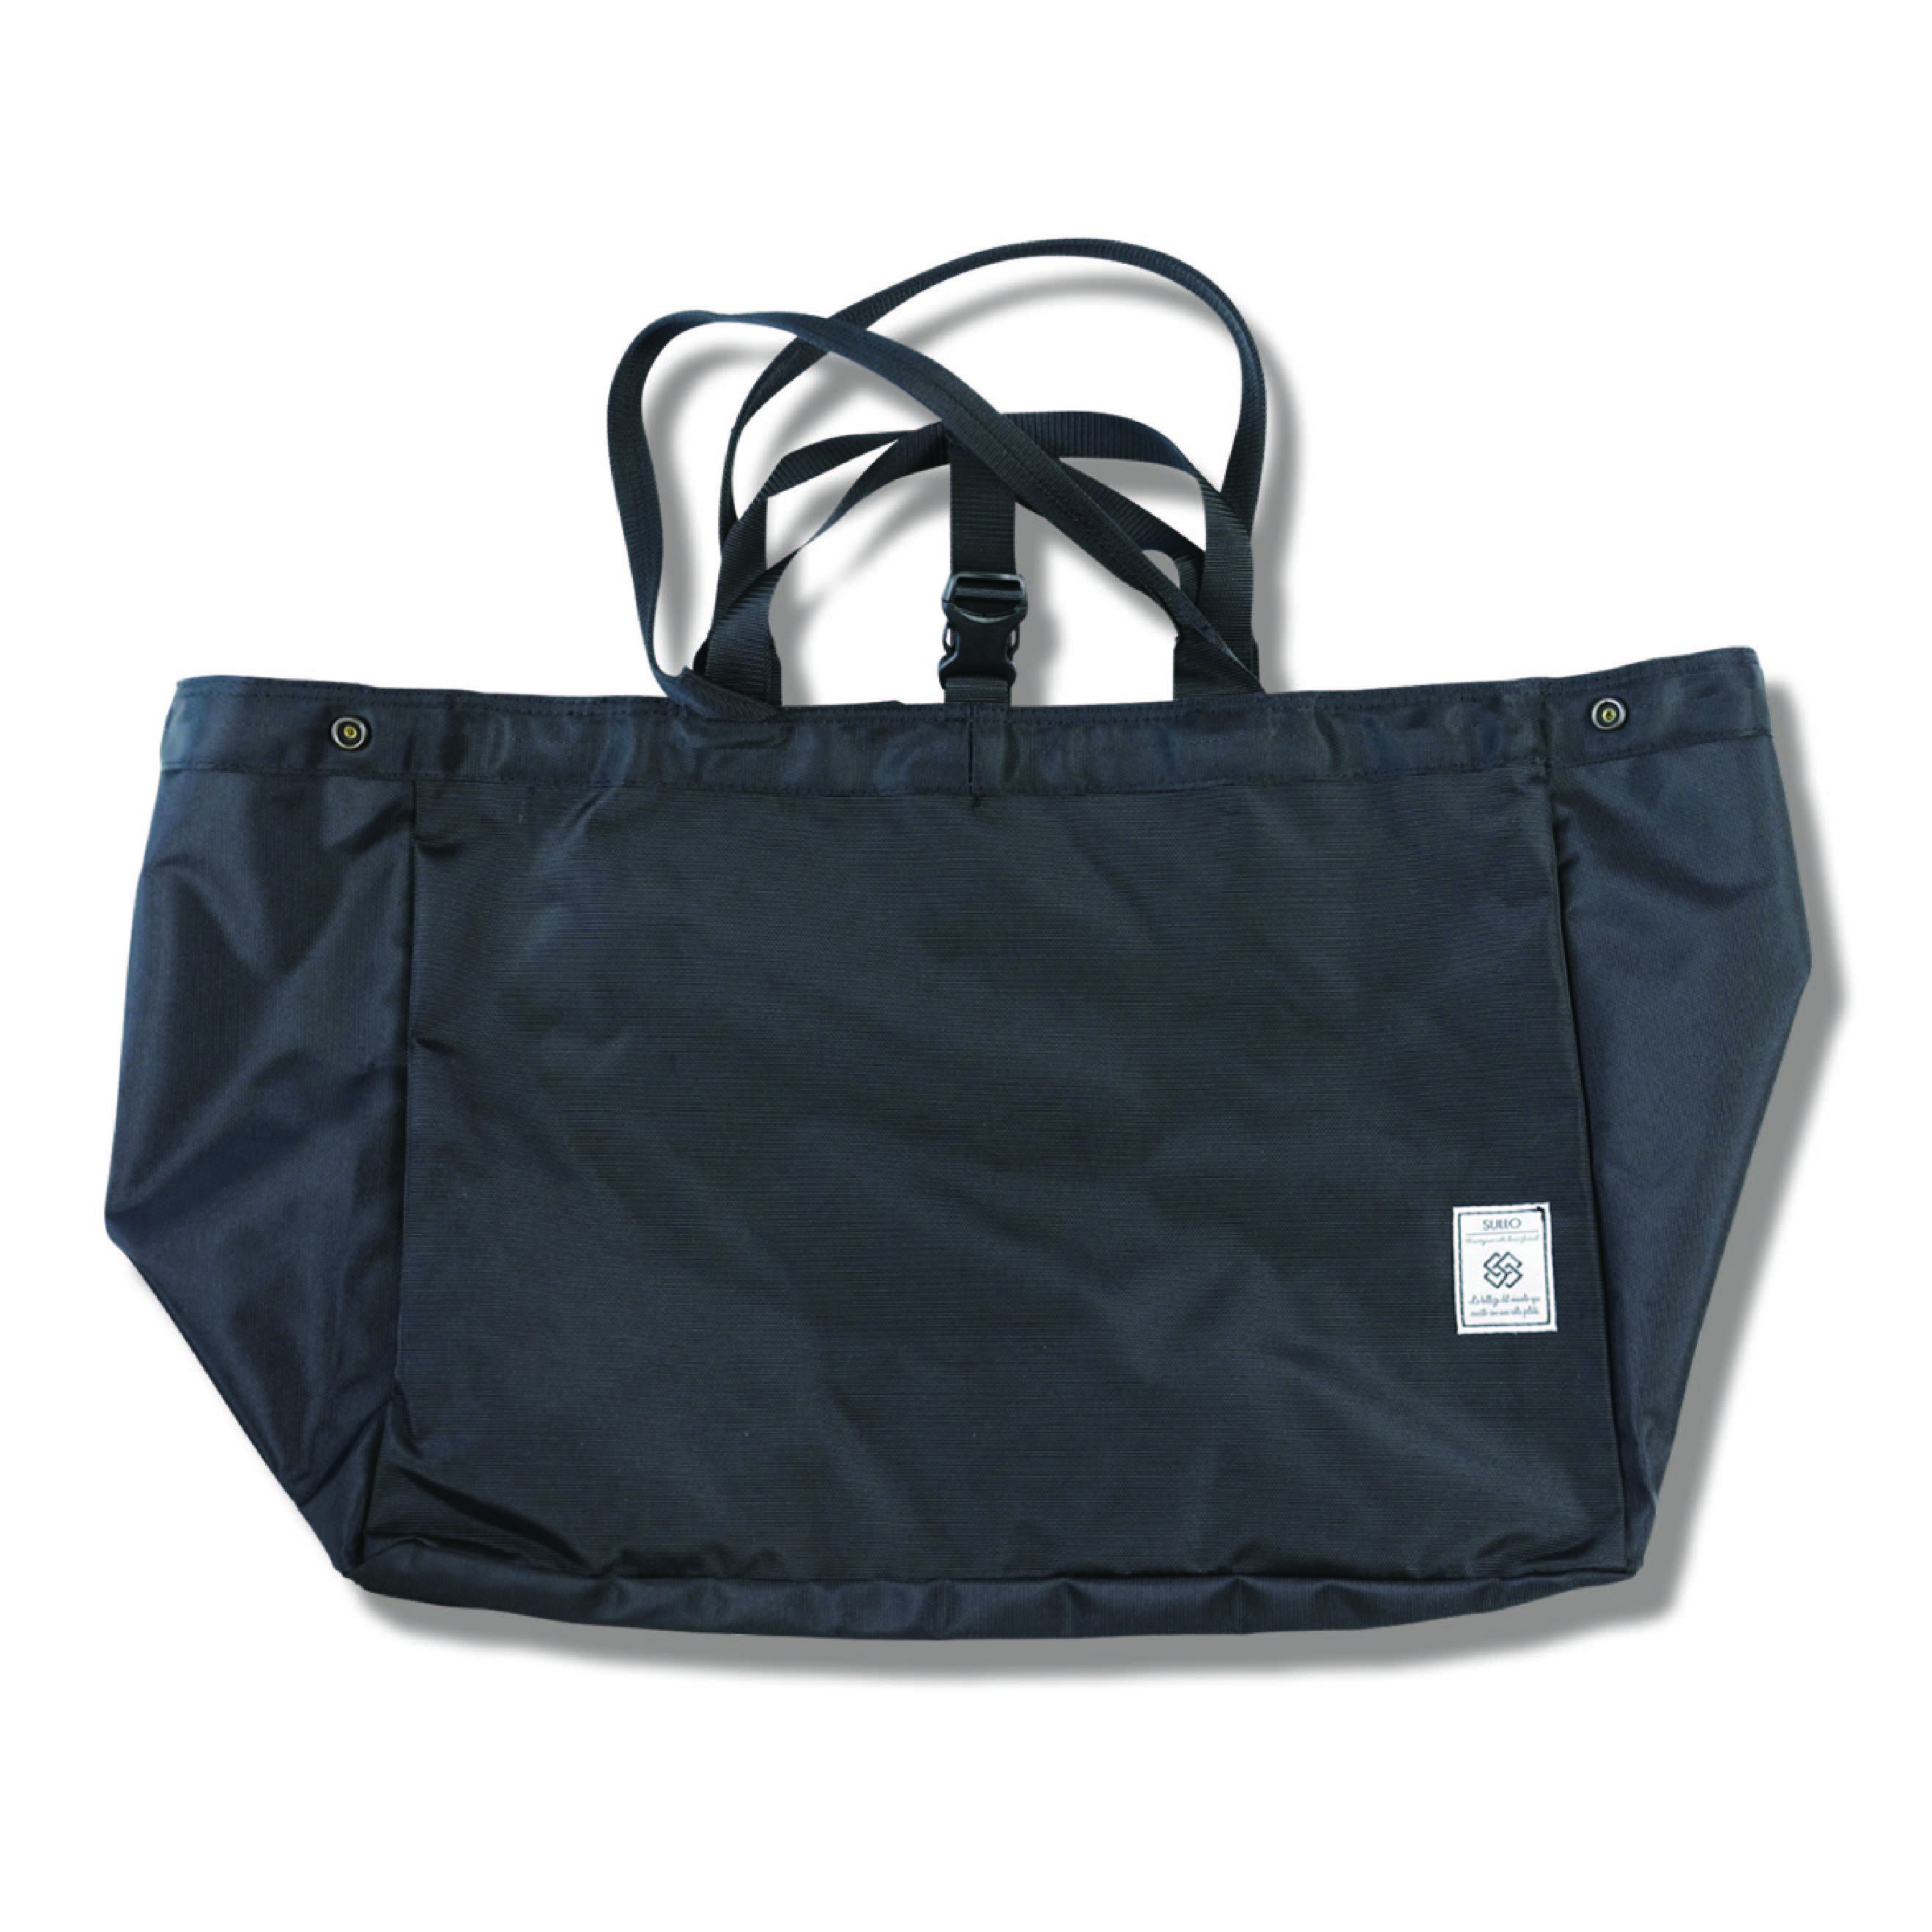 GYM TOTE BAG(全1カラー)